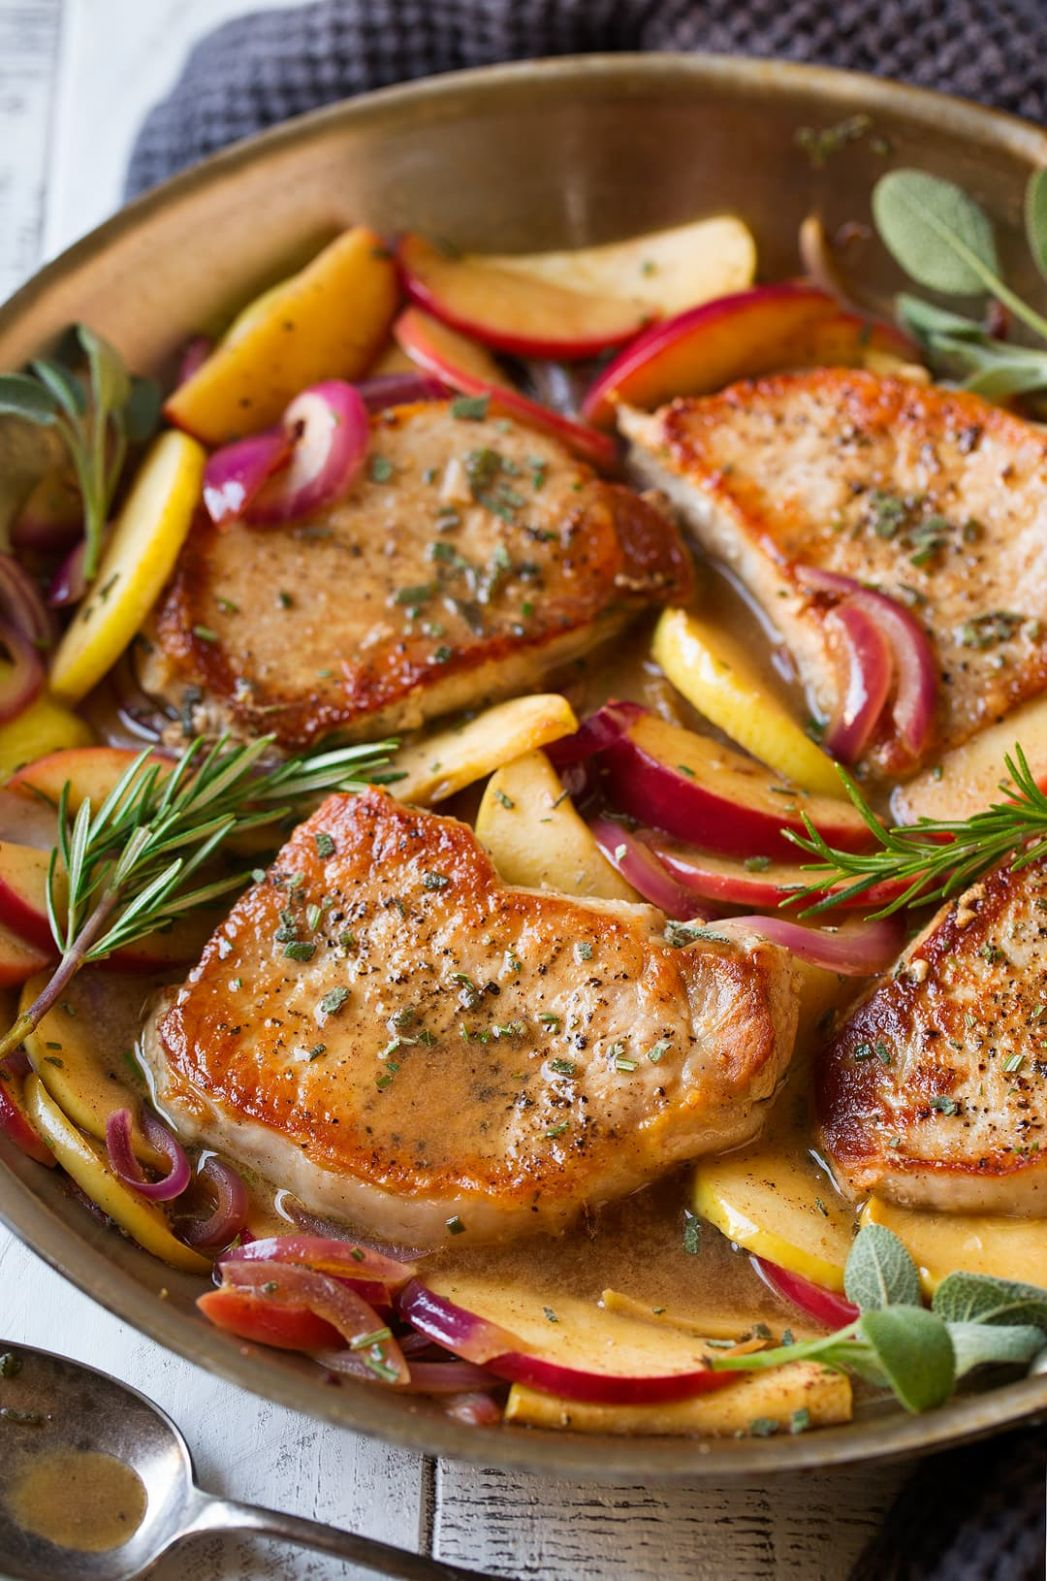 Pork Chops with Apples and Onions - Cooking Classy